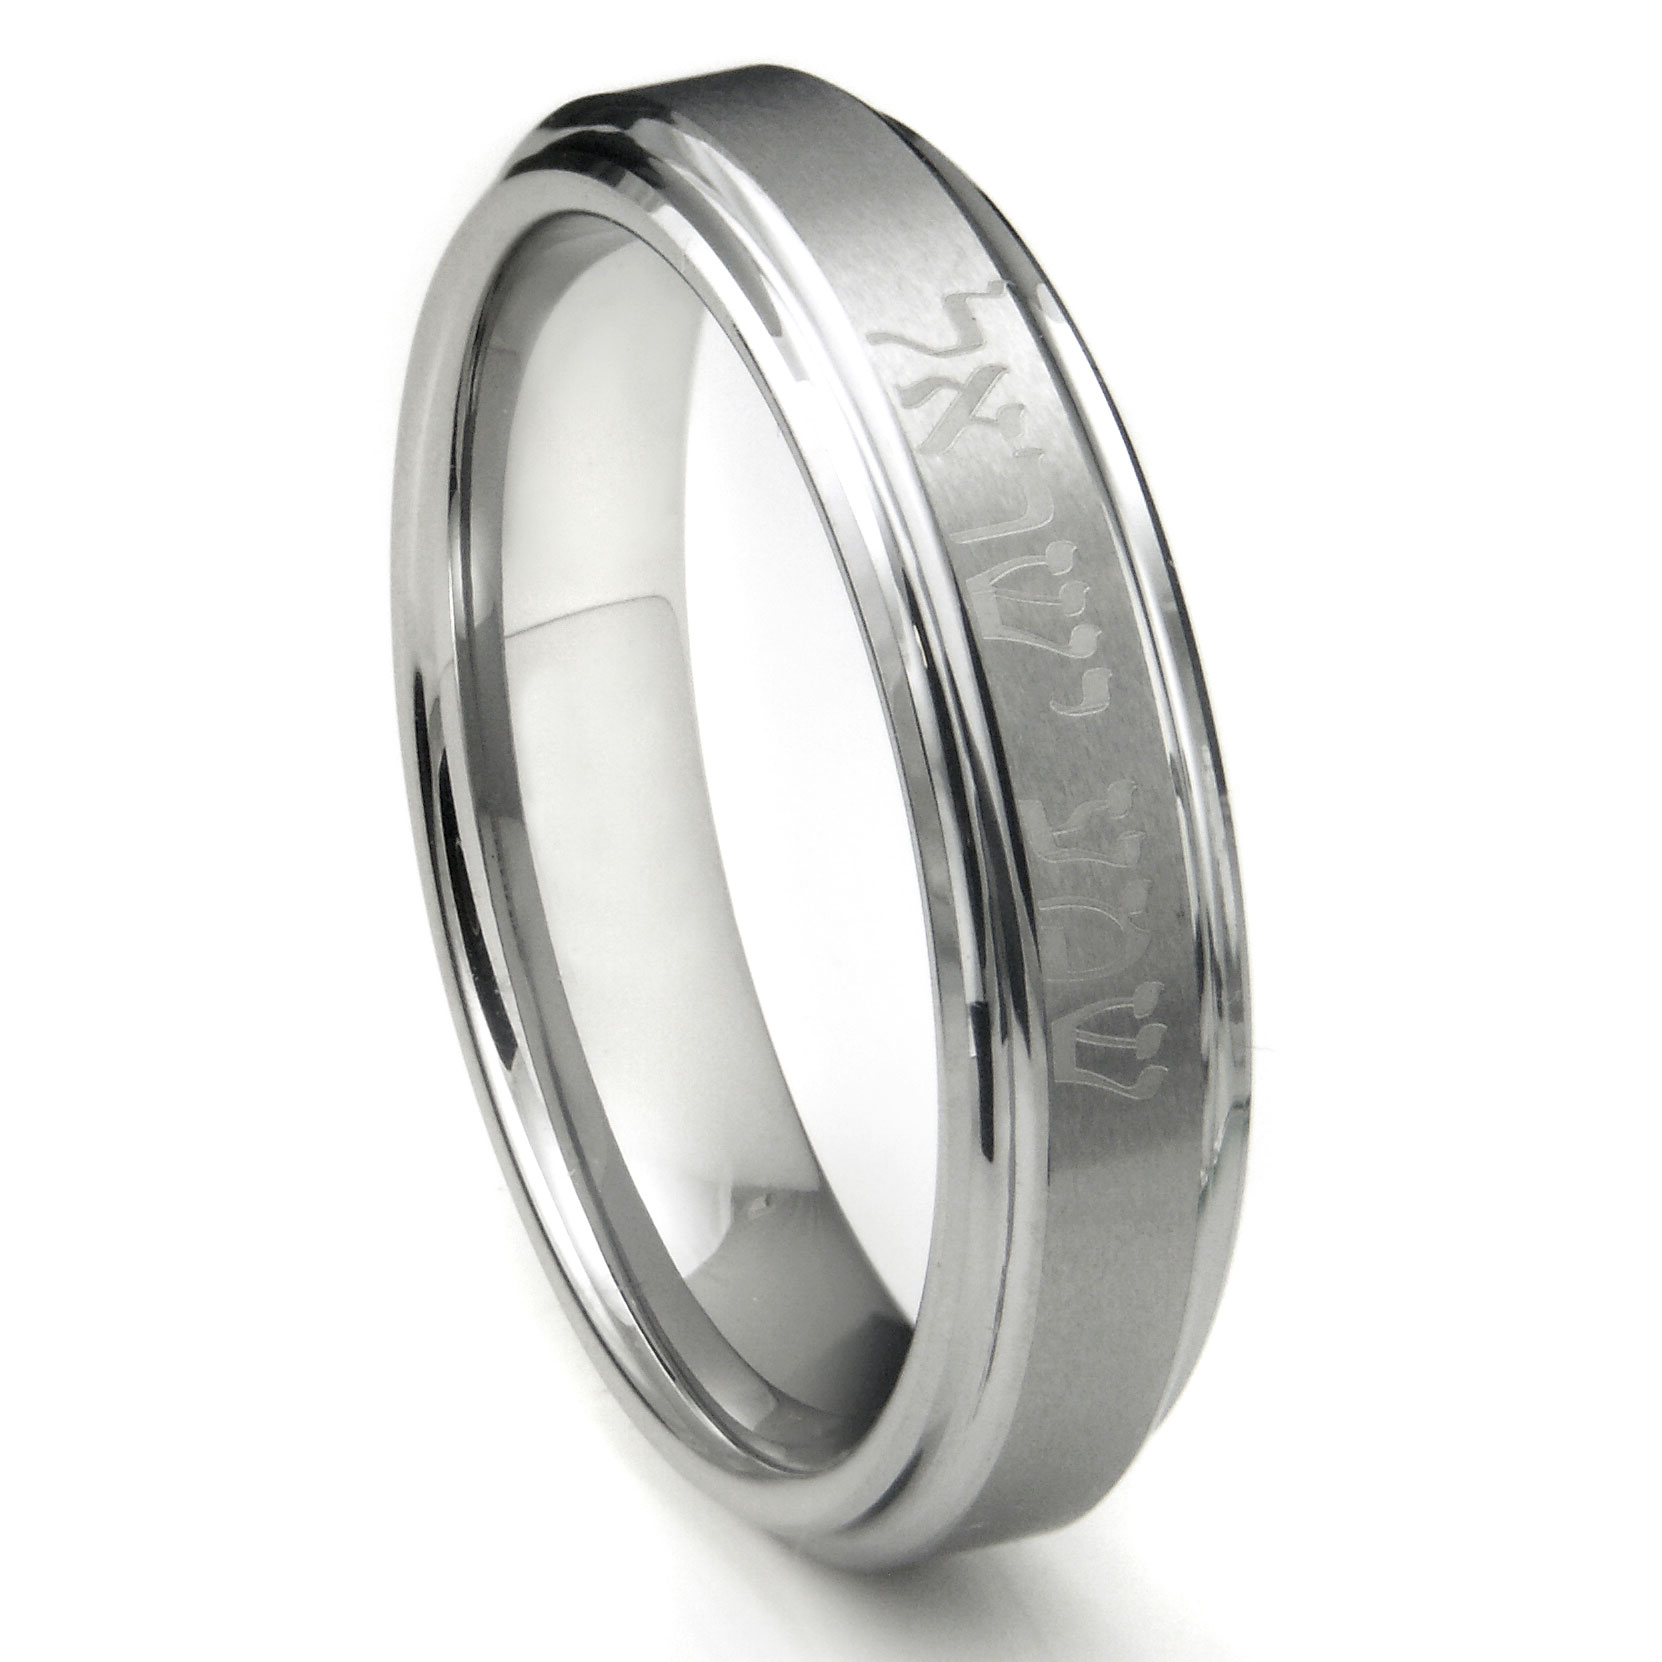 wedding ring bands jewellery rings besttohave hers you with sets his matching engraved couple and love image titanium i mens